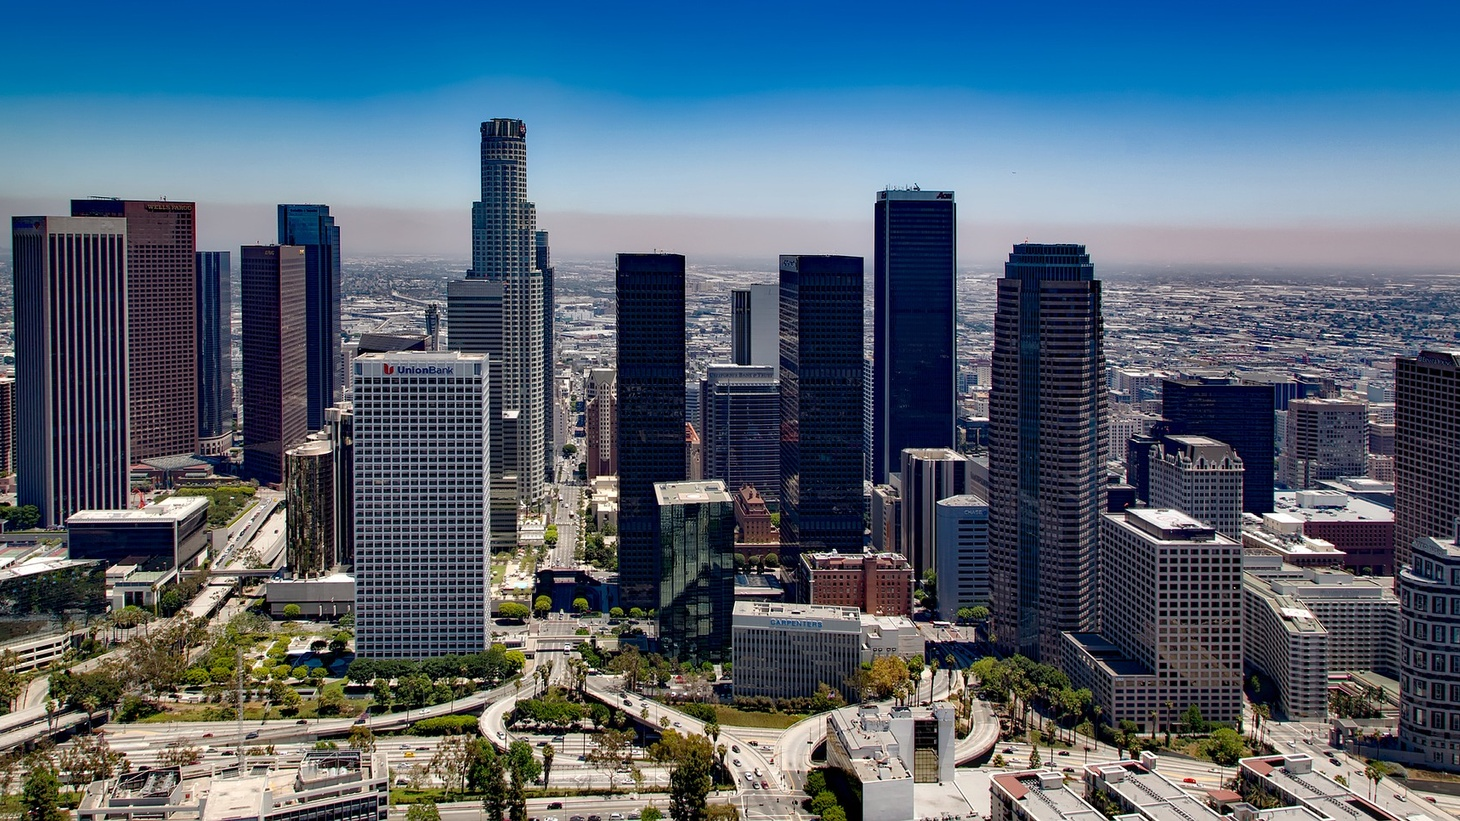 Proposition 15 would amend the California State Constitution to require that some commercial and industrial properties be reassessed and taxed on their market value.